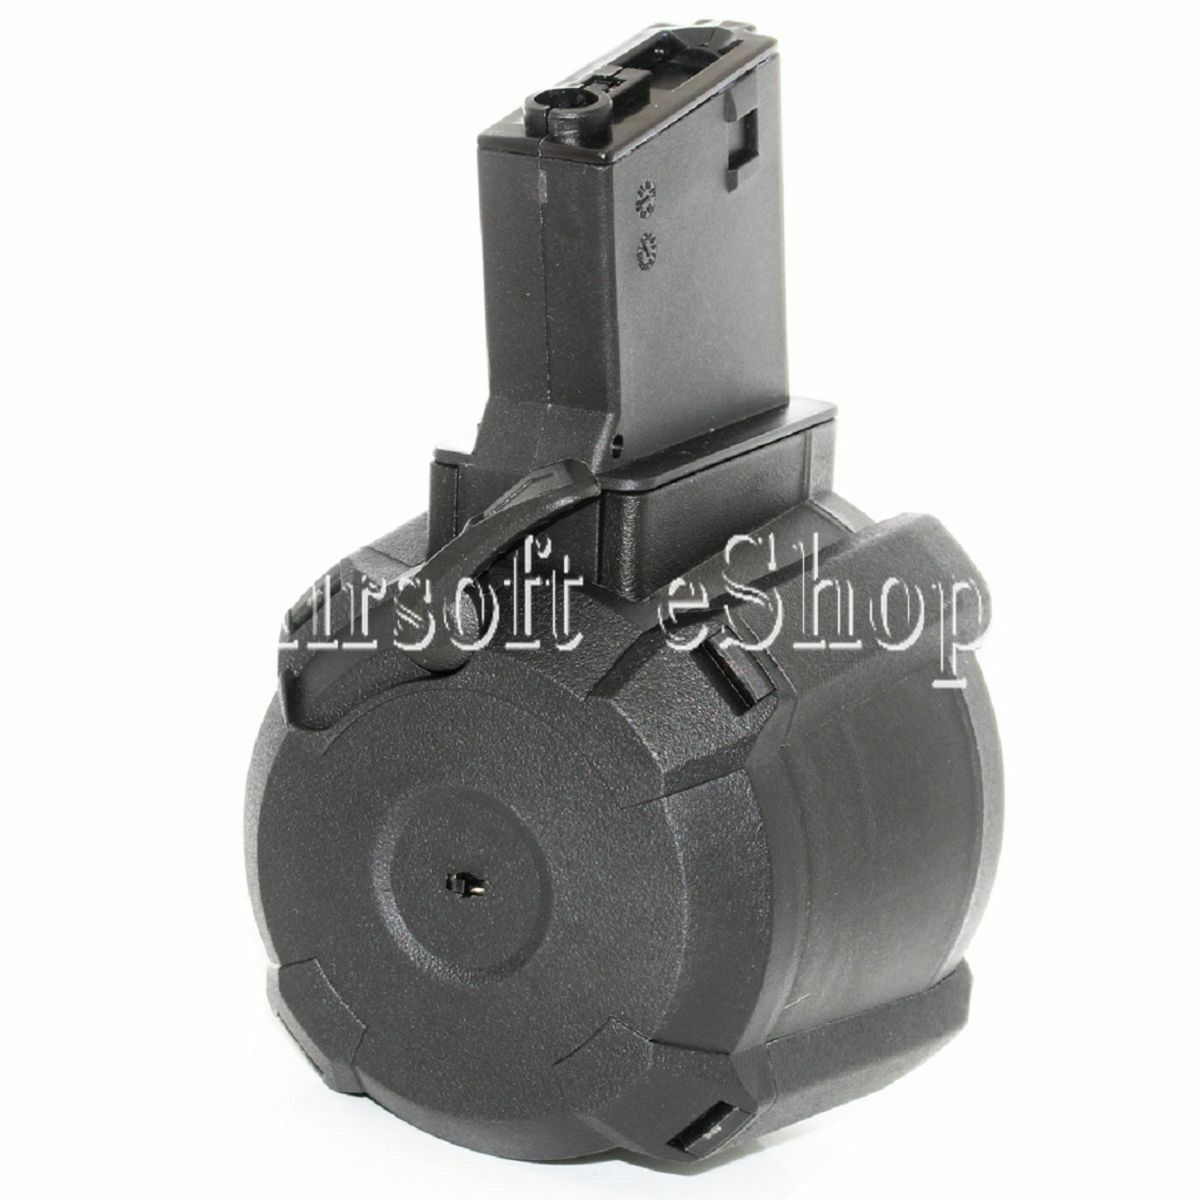 AirsoftMega BATTLEAXE 1400rd Sound Control Electric Drum Magazine For M-Series